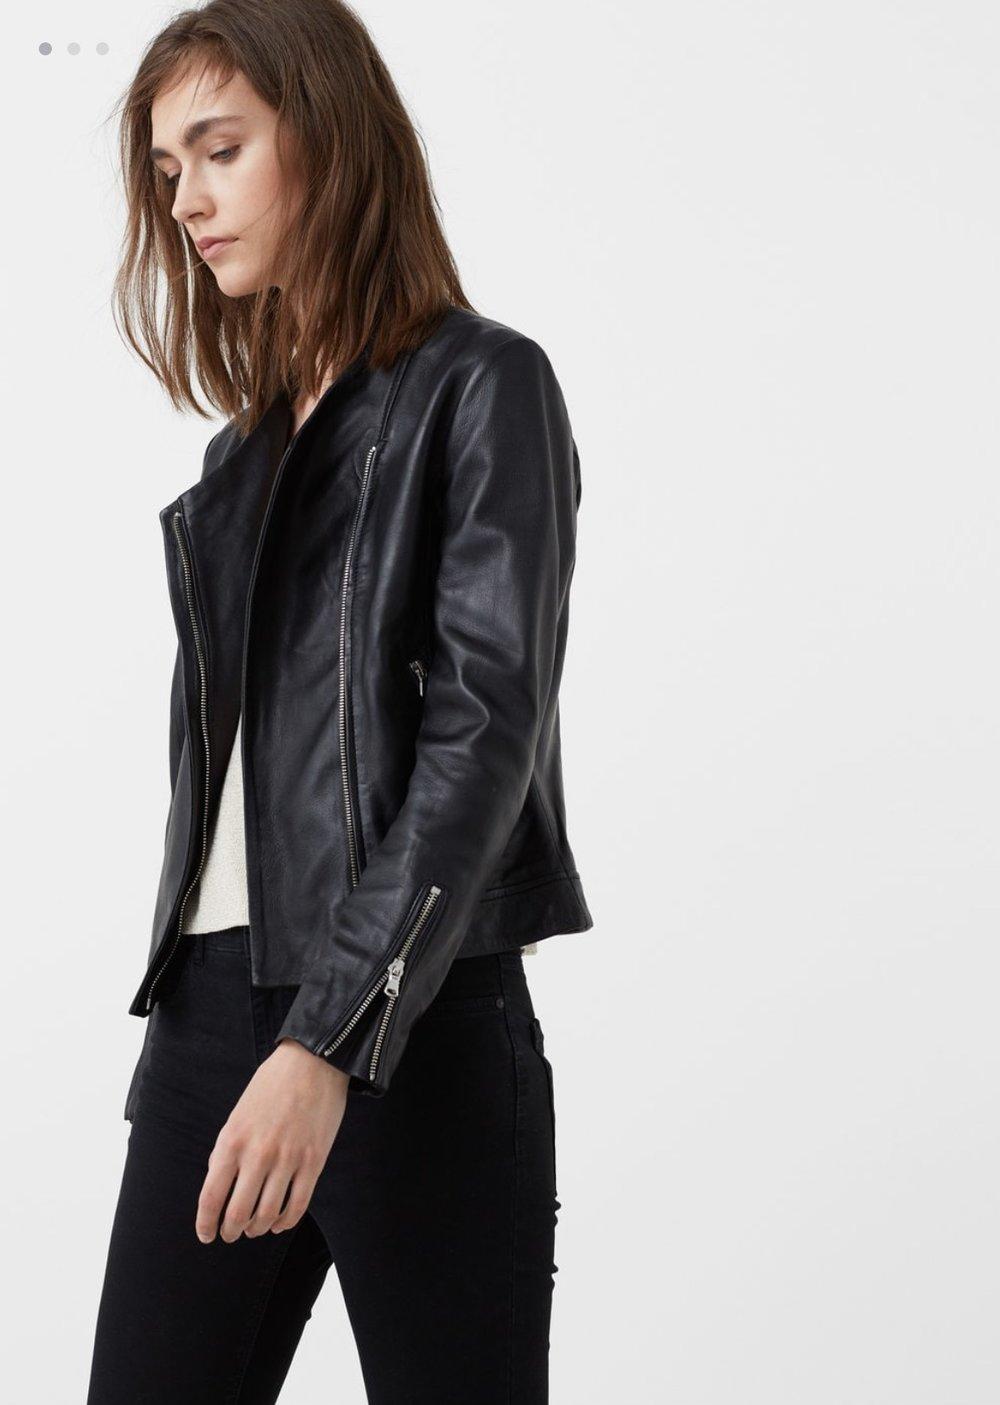 Last but by no means least, three leather jackets to finish off with, throw over a dress, trousers - fab to pick one up in the sales.